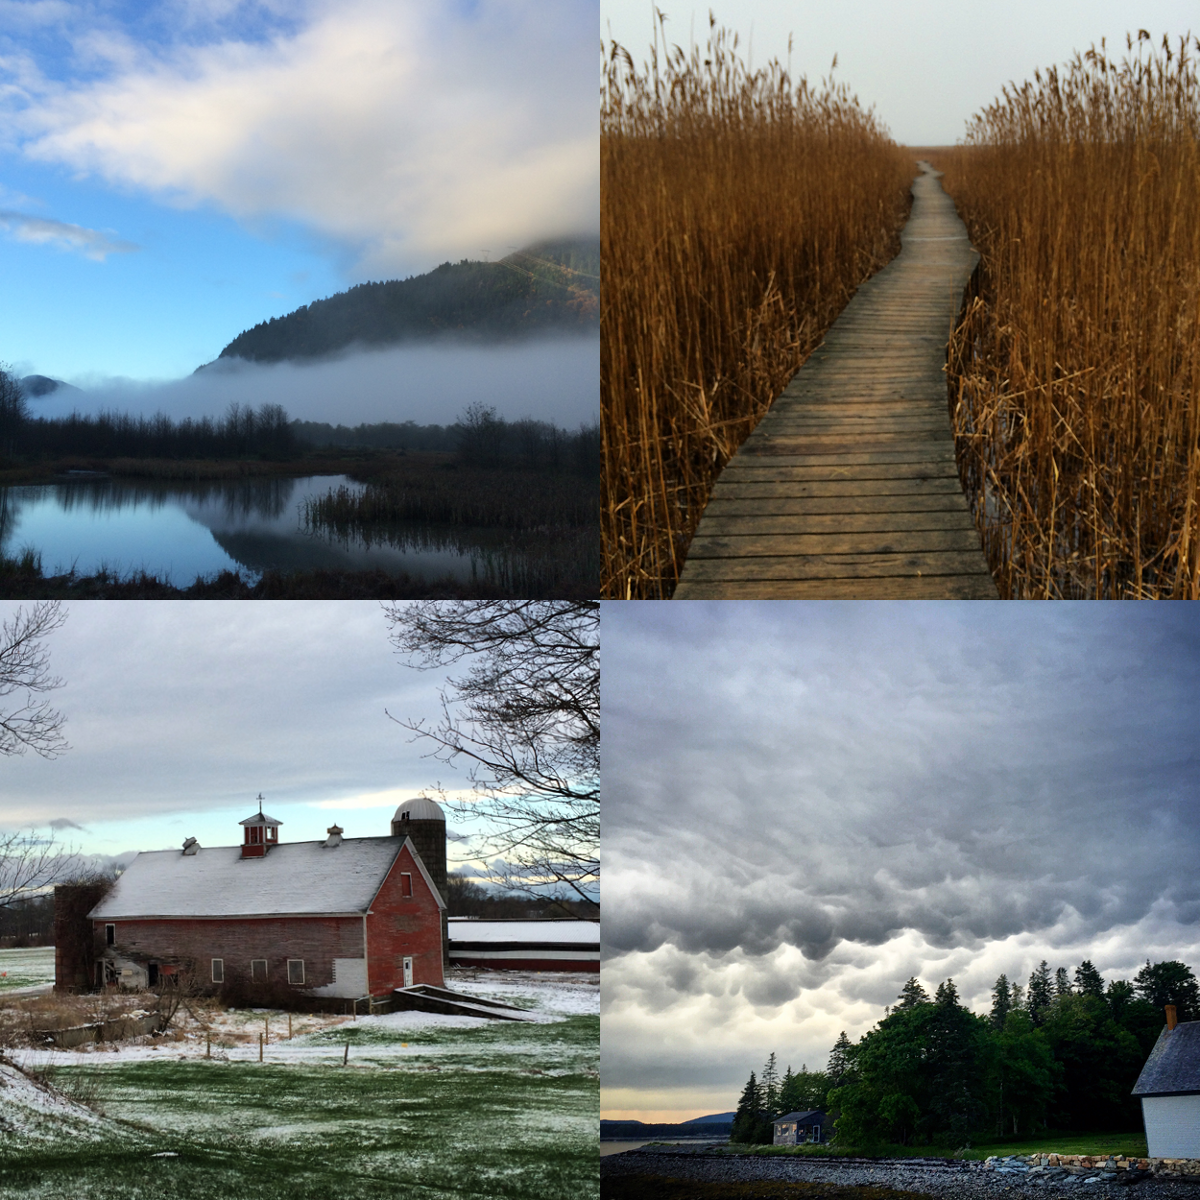 """Every single day, no matter the weather, no matter where I am, I go for a walk."" (Photographs by Libby DeLana)"